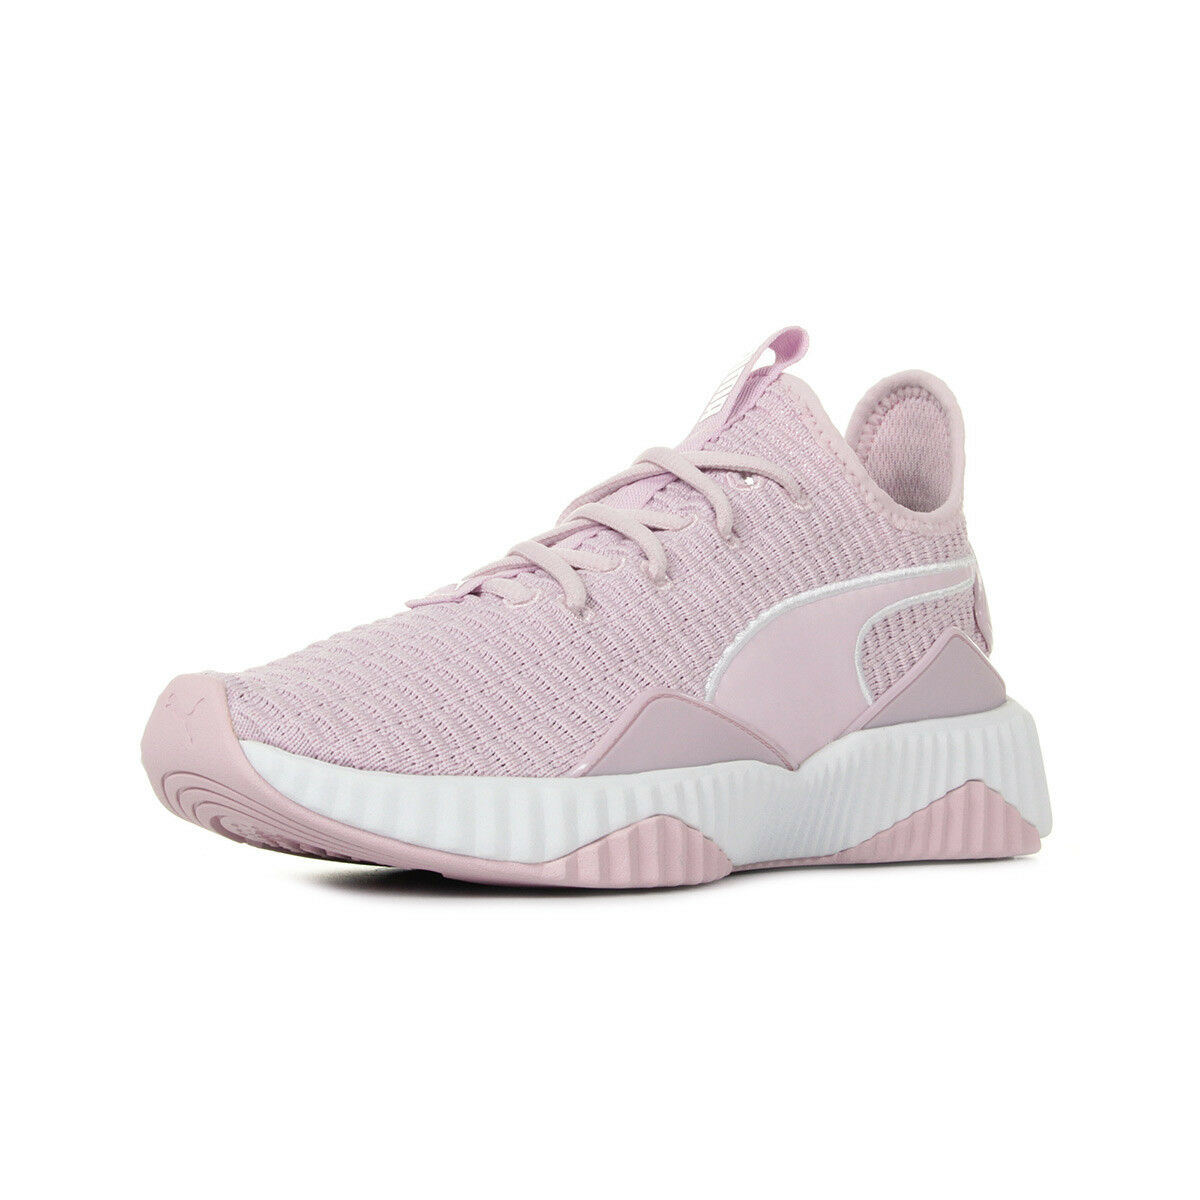 Chaussures Baskets Puma femme Defy Wn's taille Rose Textile Lacets